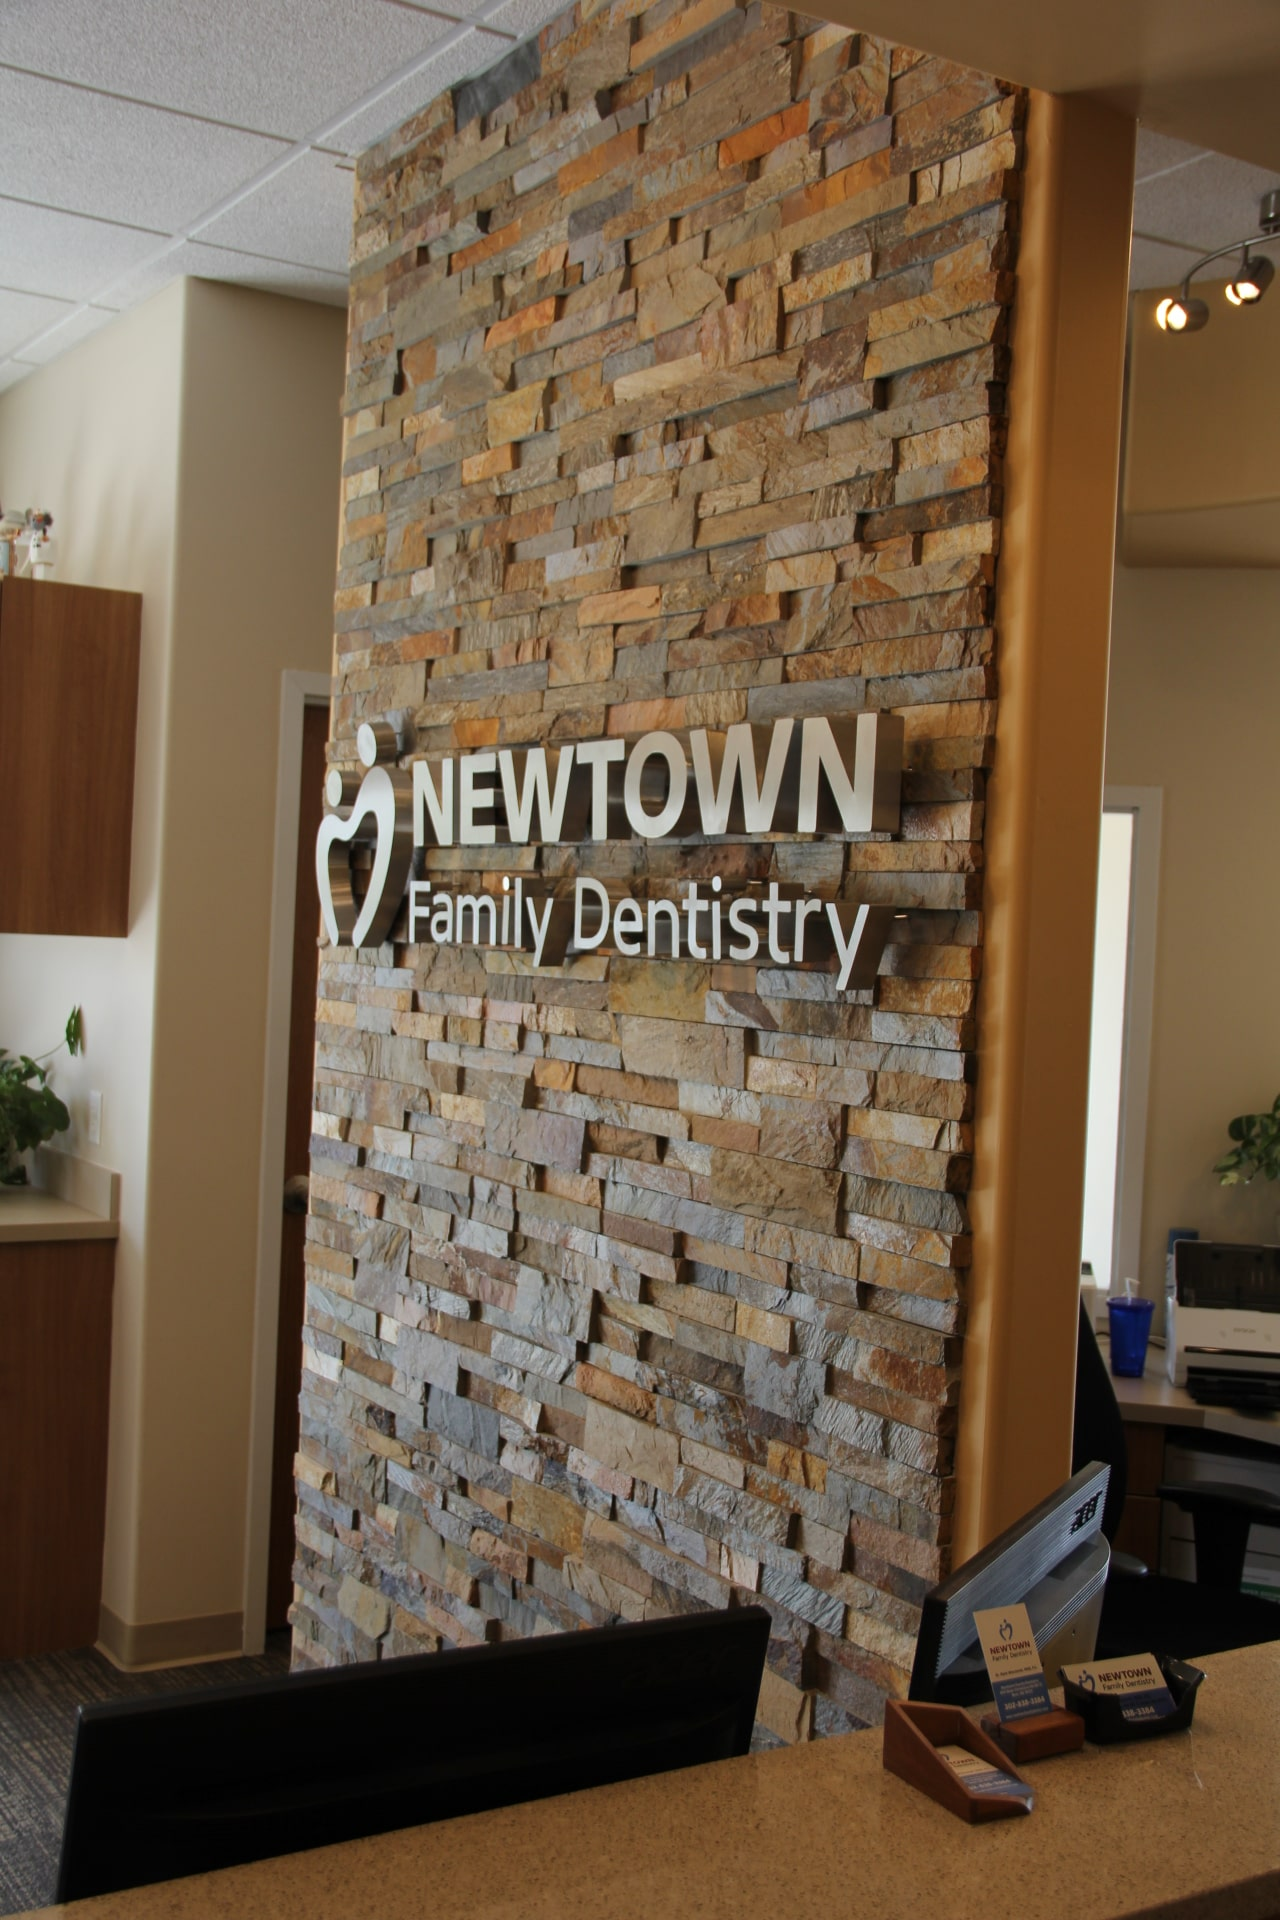 Two Sided Stacked Stone Feature Wall in Dentist Office with Stainless Steel Signage